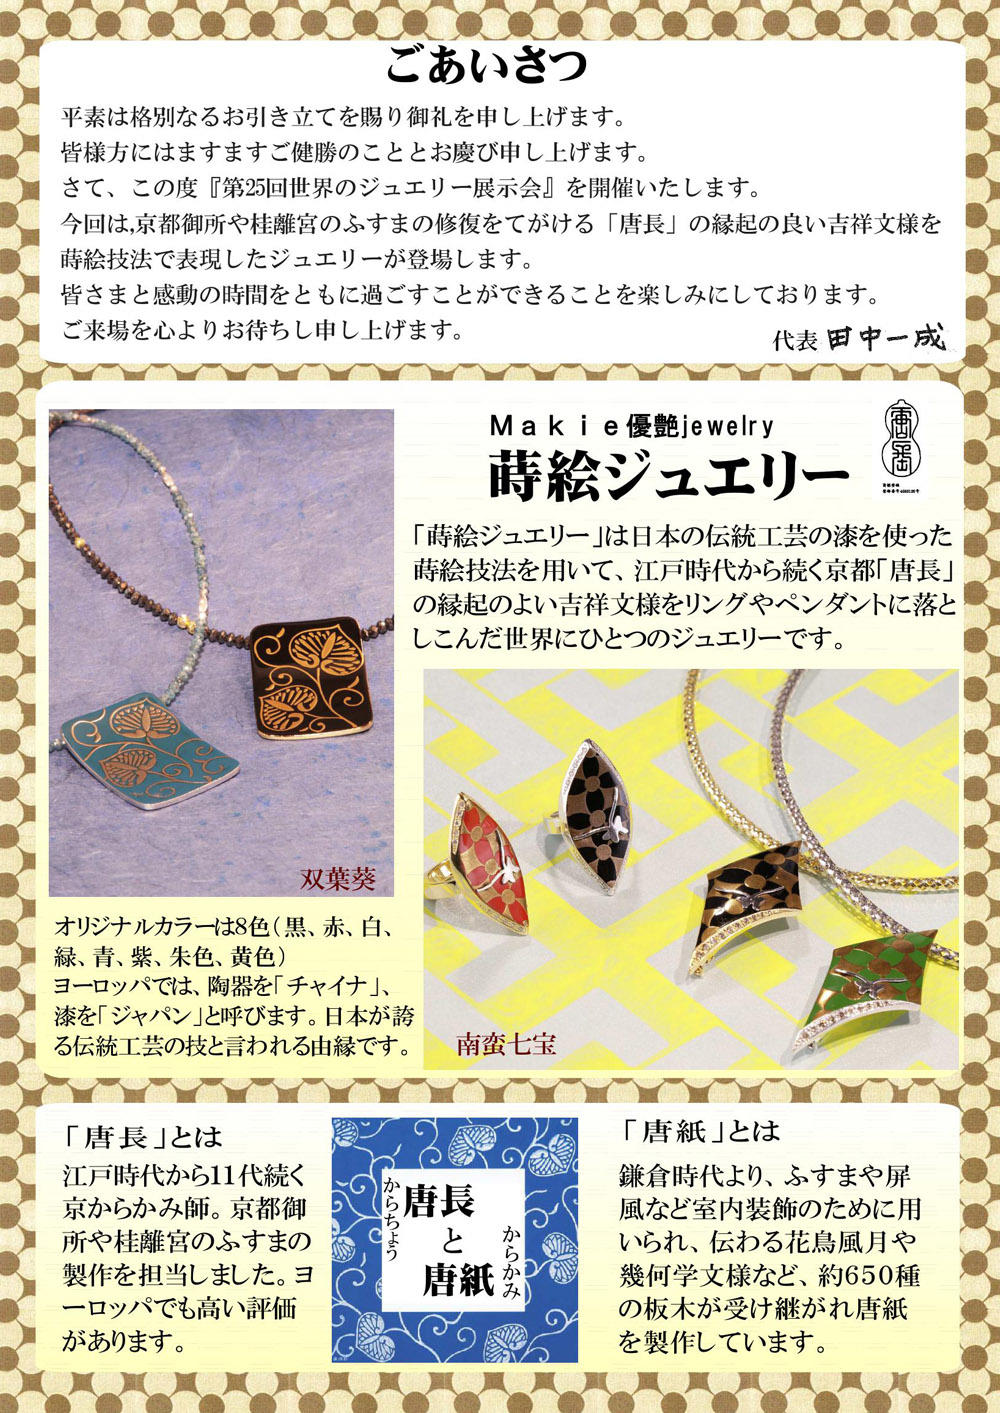 world_jewelry_ura.jpg